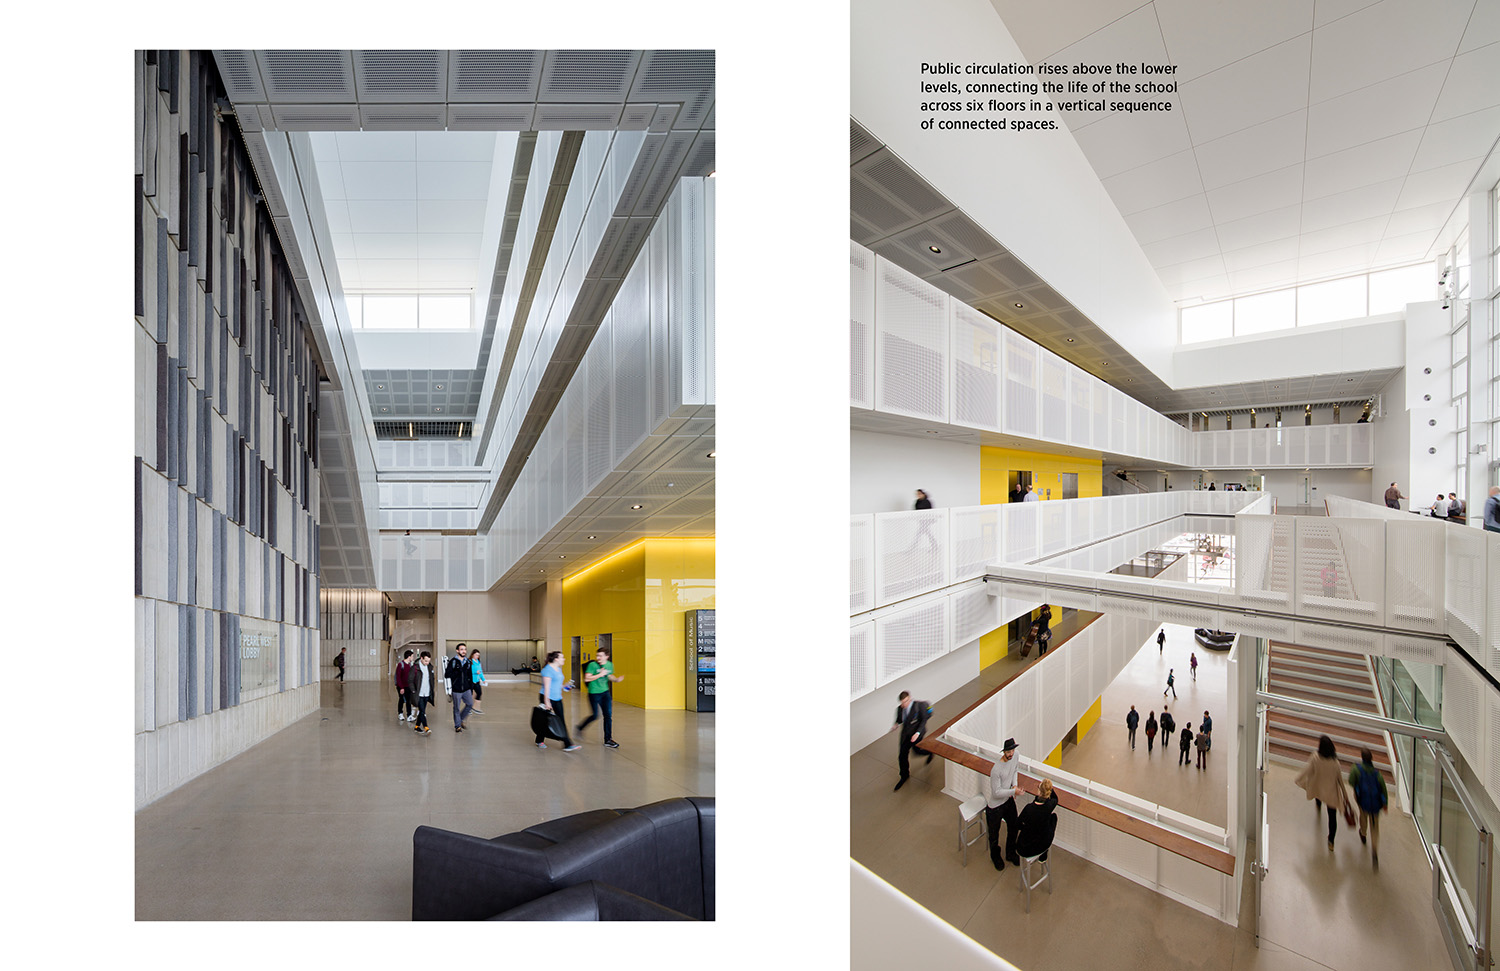 Public circulation rises above the lower levels, connecting the life of the school across six floors in a vertical sequence of connected spaces. Tim Griffith}